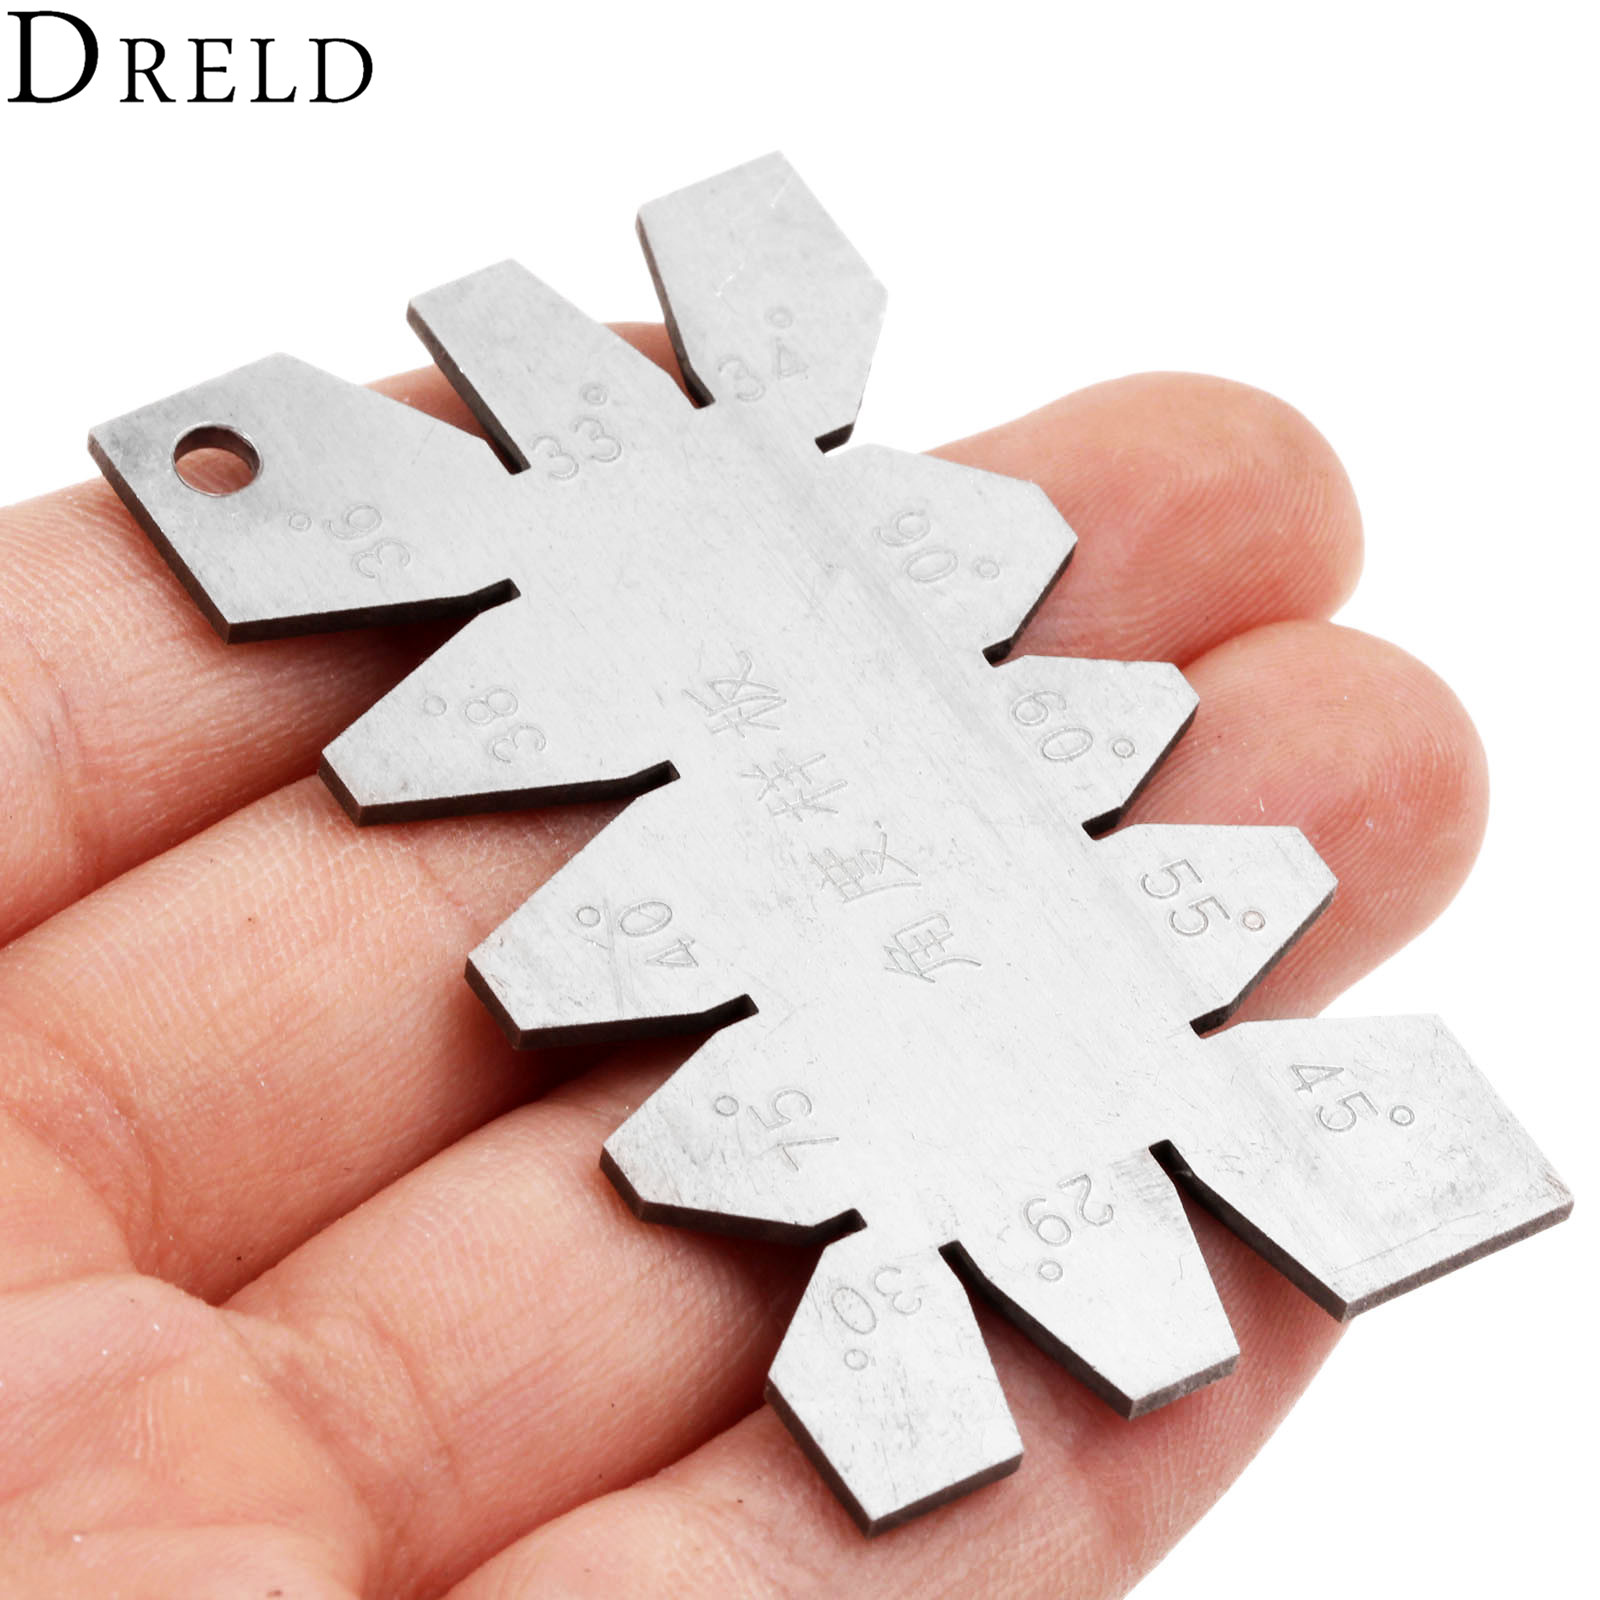 DRELD 1Pc Sliver Stainless Steel Screw Thread Cutting Angle Gage Gauge Measuring Tool цена